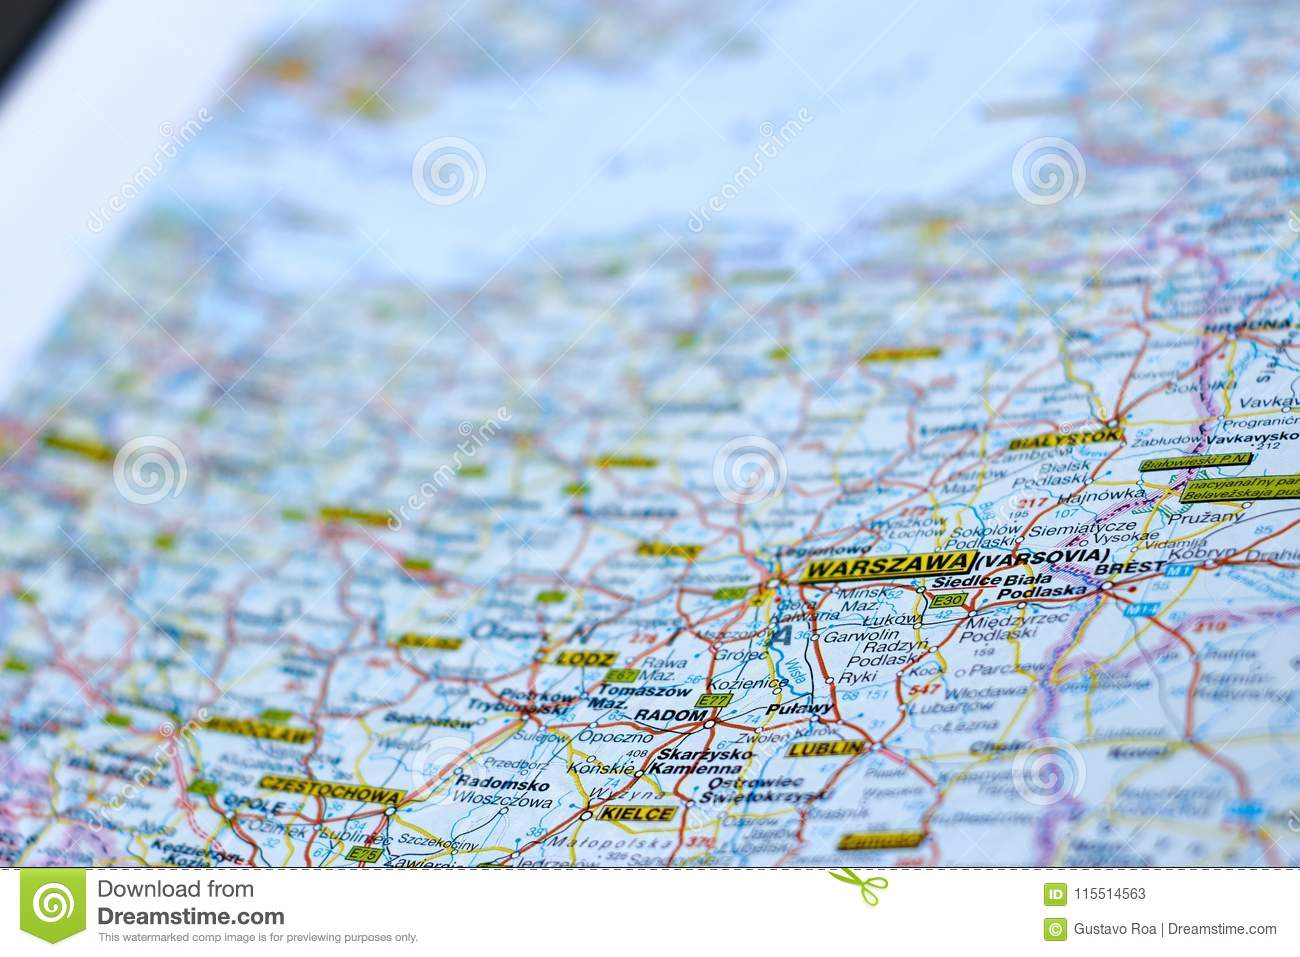 Capital Of Poland Map.Warszawa On The Map Stock Image Image Of Surroundings 115514563